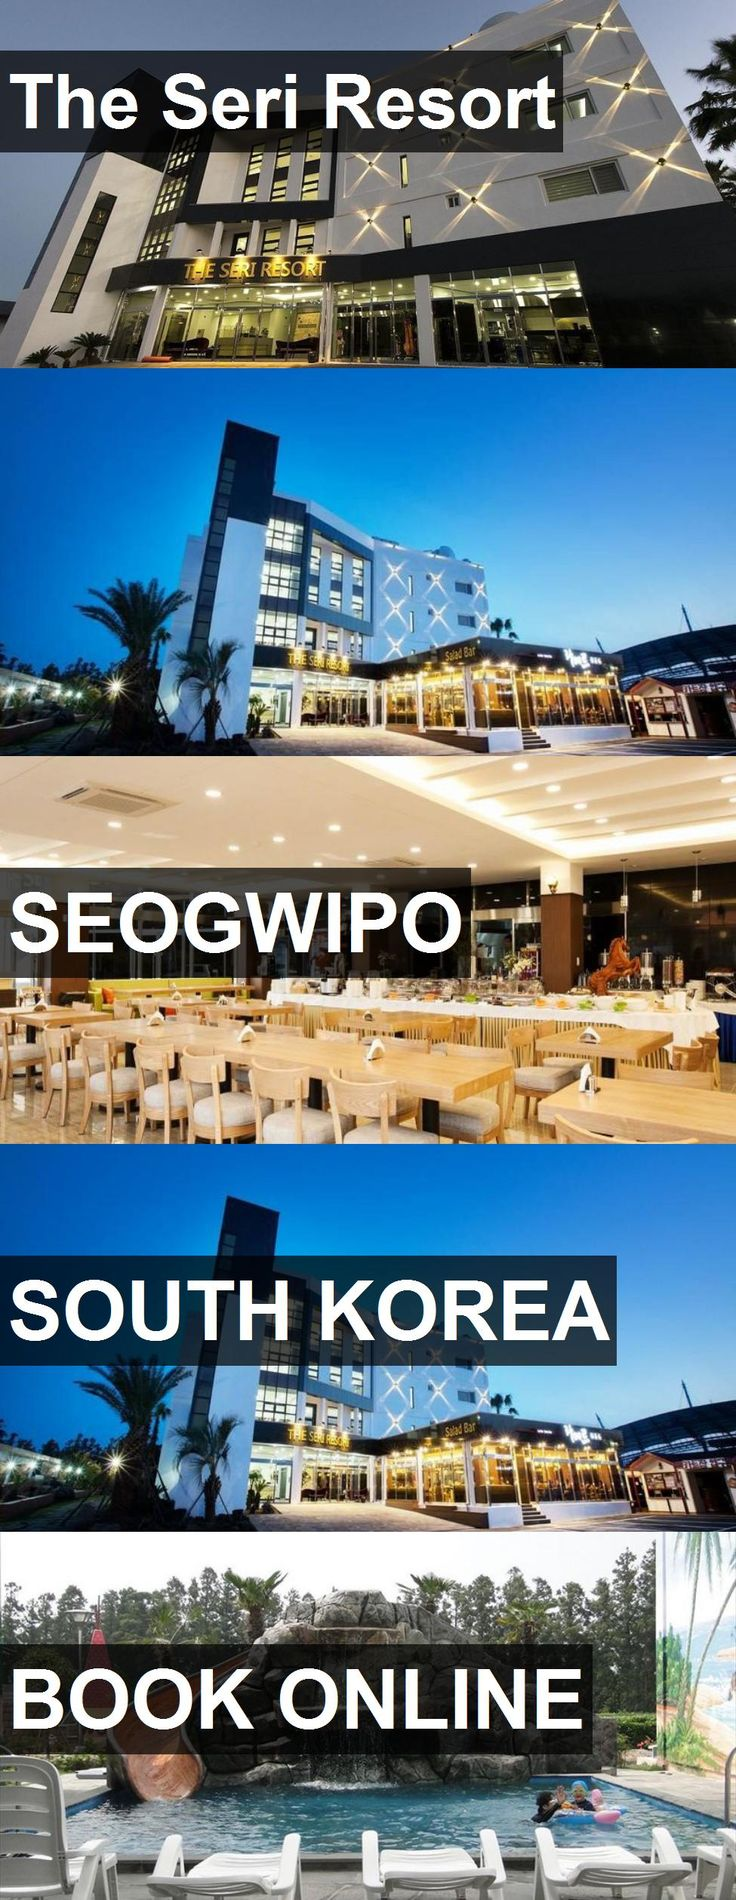 Hotel The Seri Resort in Seogwipo, South Korea. For more information, photos, reviews and best prices please follow the link. #SouthKorea #Seogwipo #travel #vacation #hotel